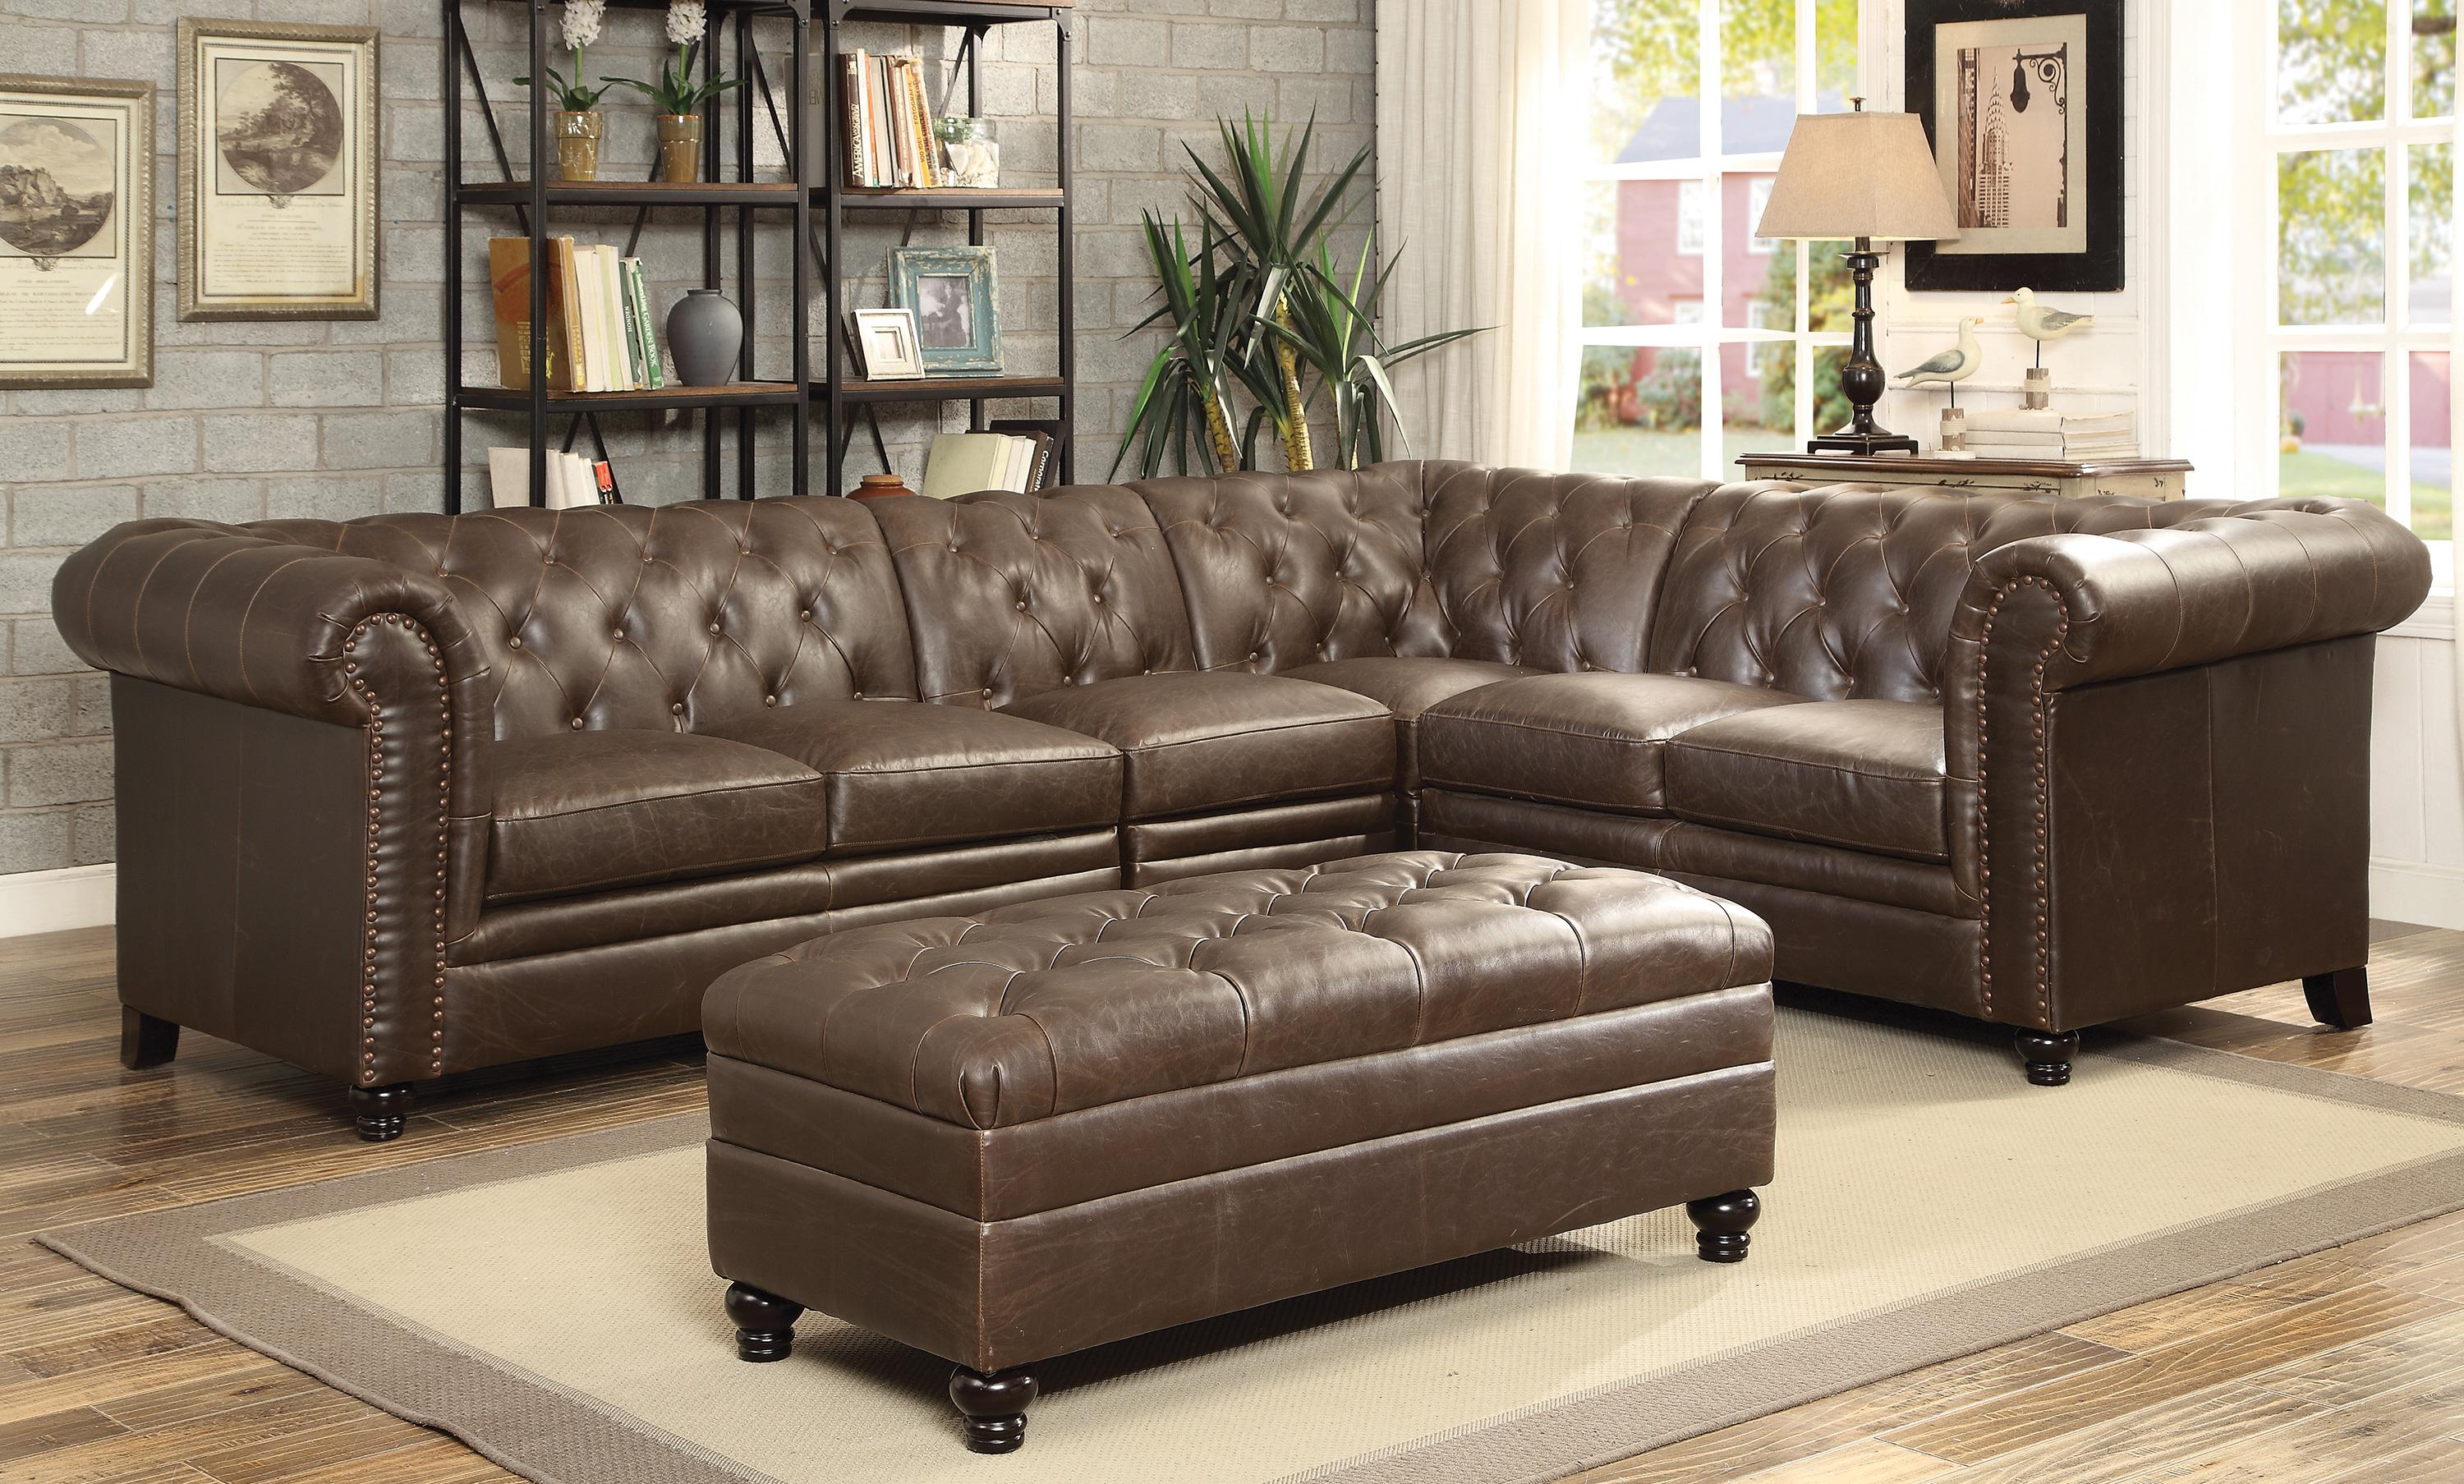 al by custom banner stationary sectionals sectional luxury leather sofas american distressed